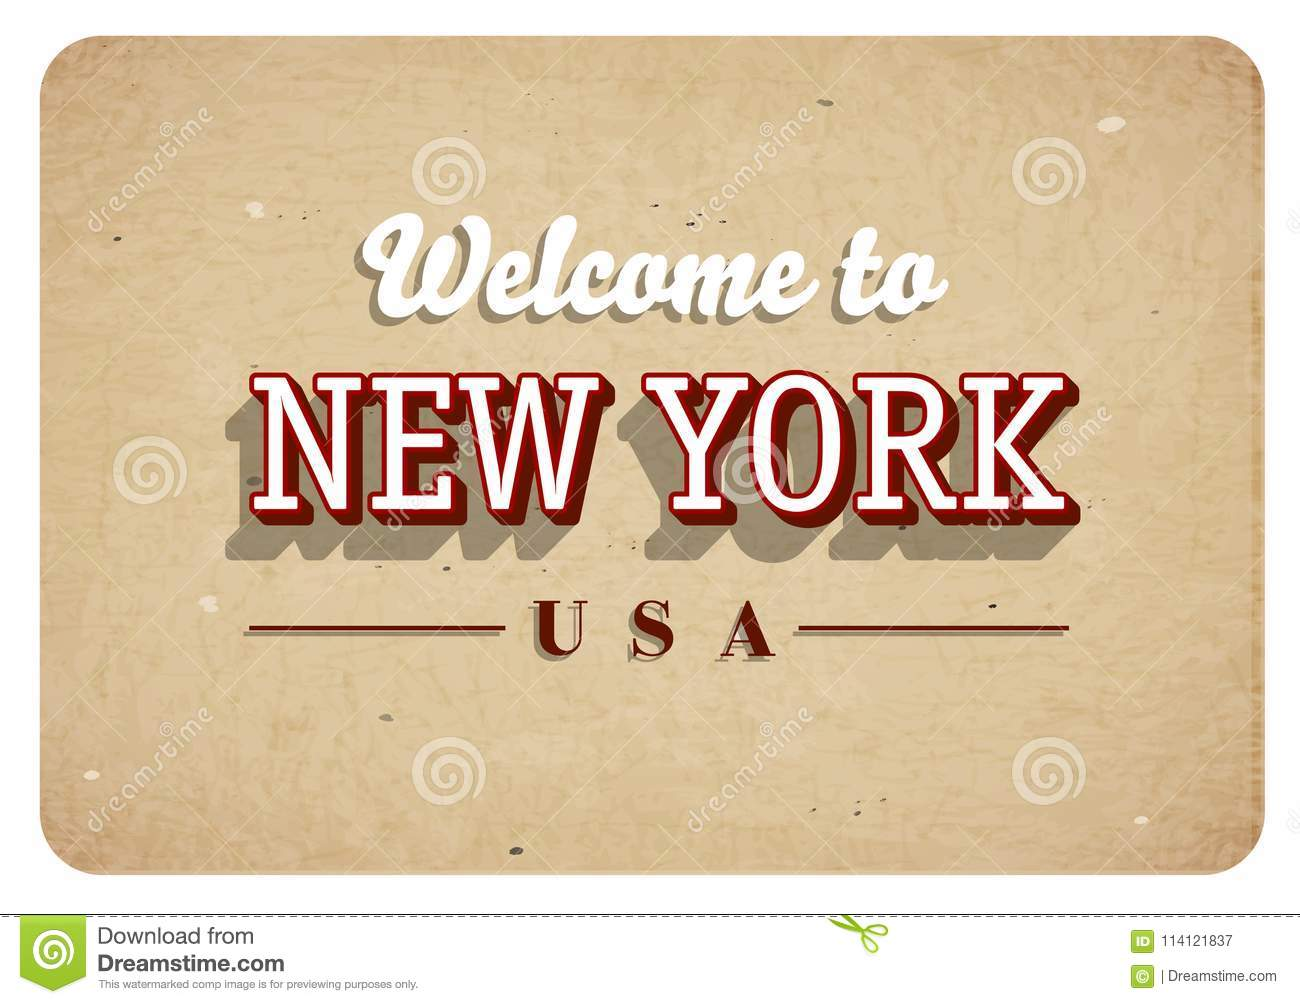 Welcome to New York - Vintage greeting card